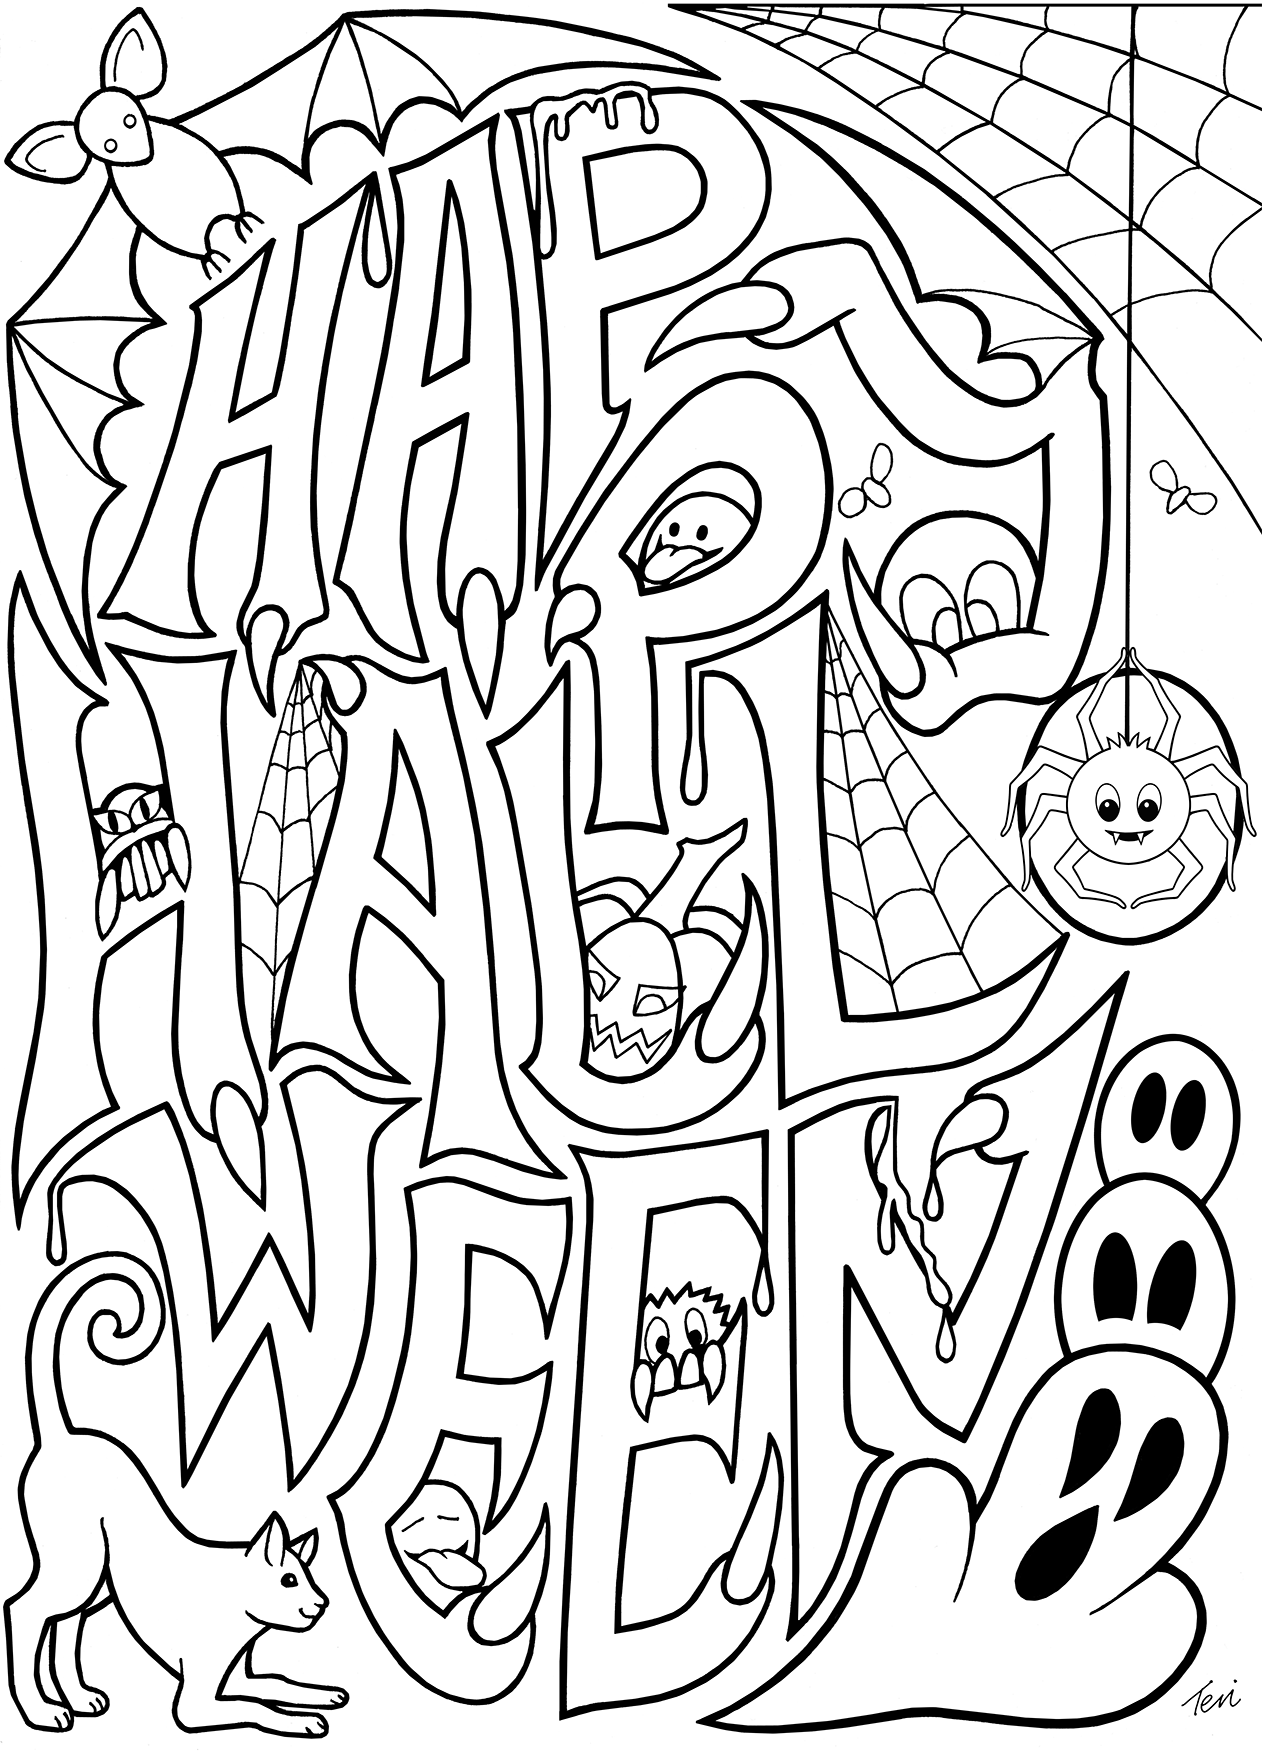 Coloring Sheets Halloween Designs Collections